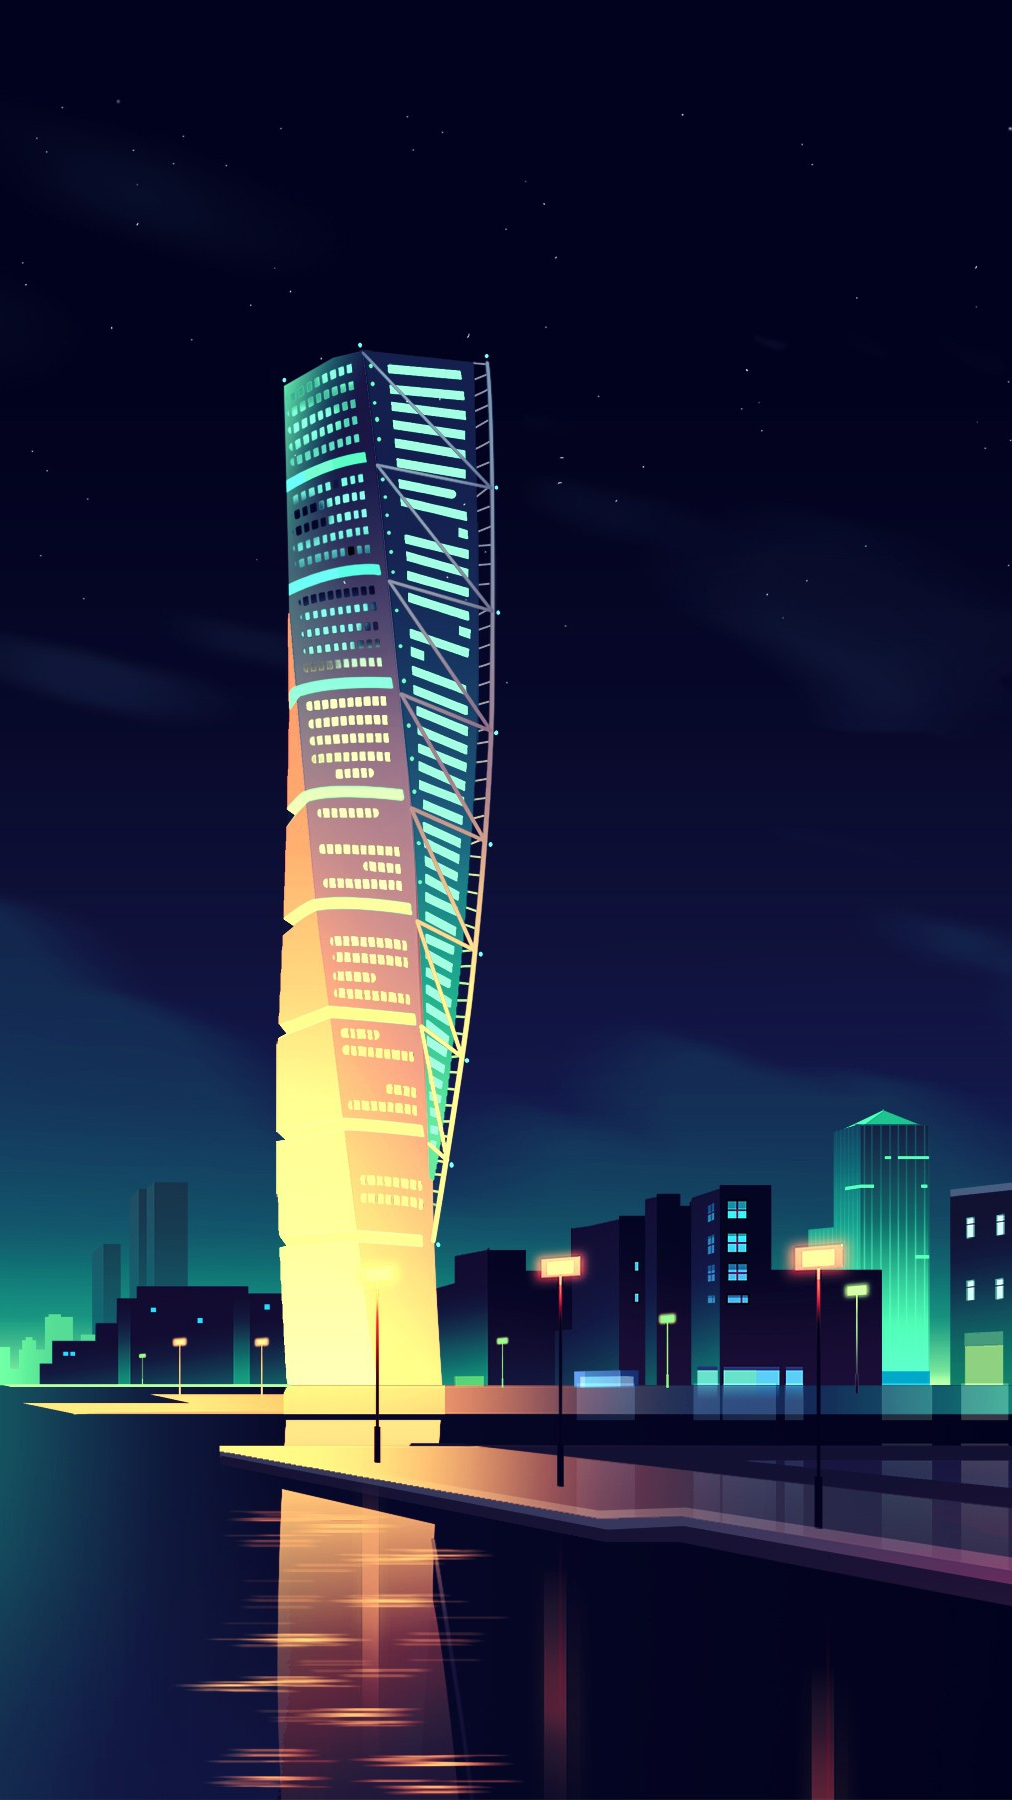 Cute Alone Girls Wallpapers Animated Night City Wallpaper Iphone Wallpaper Iphone